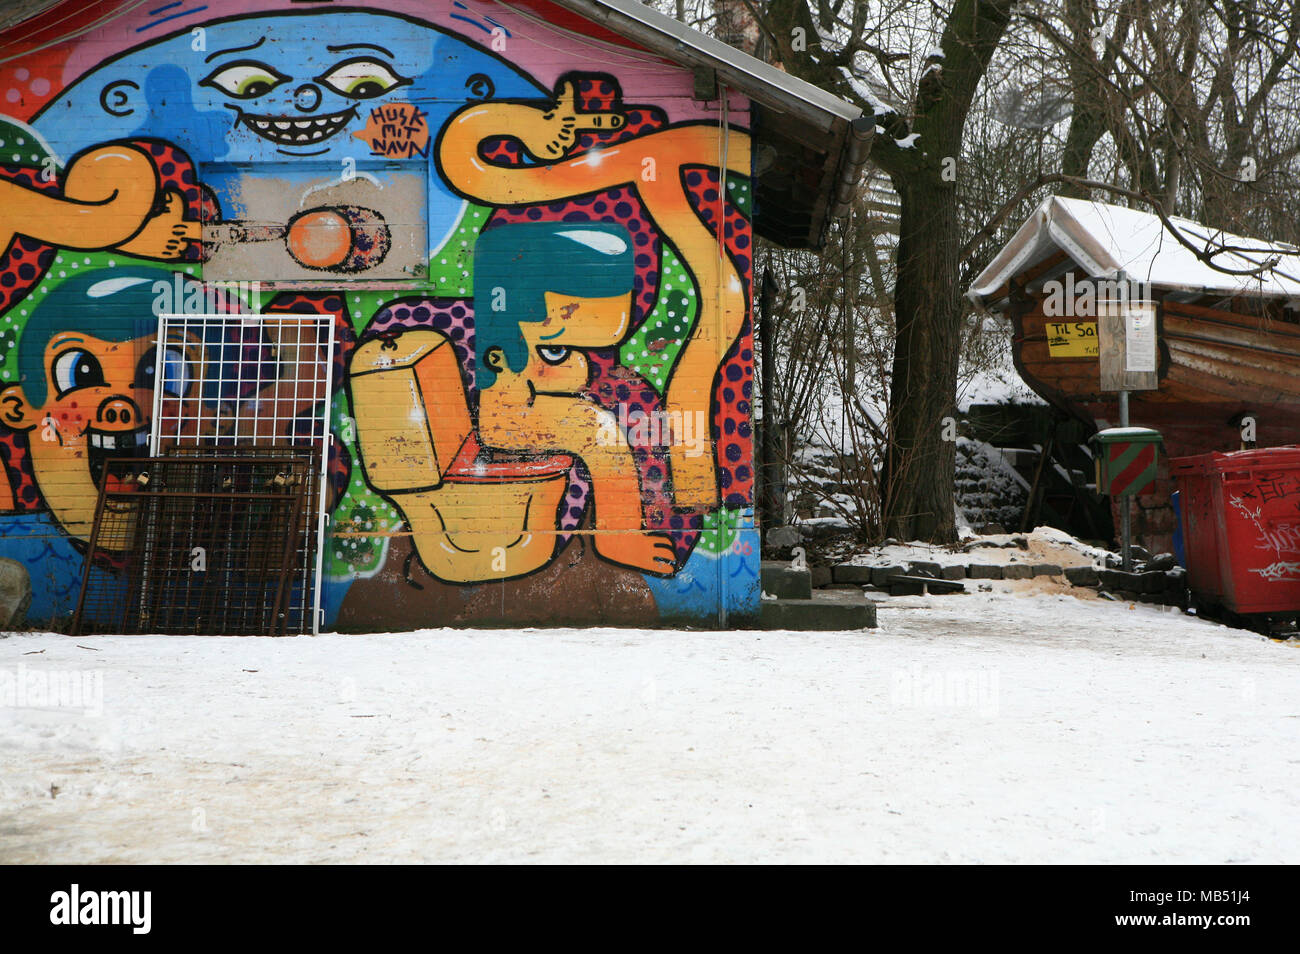 Fancy house with graffiti in Christiania, Copenhagen, Denmark - Stock Image